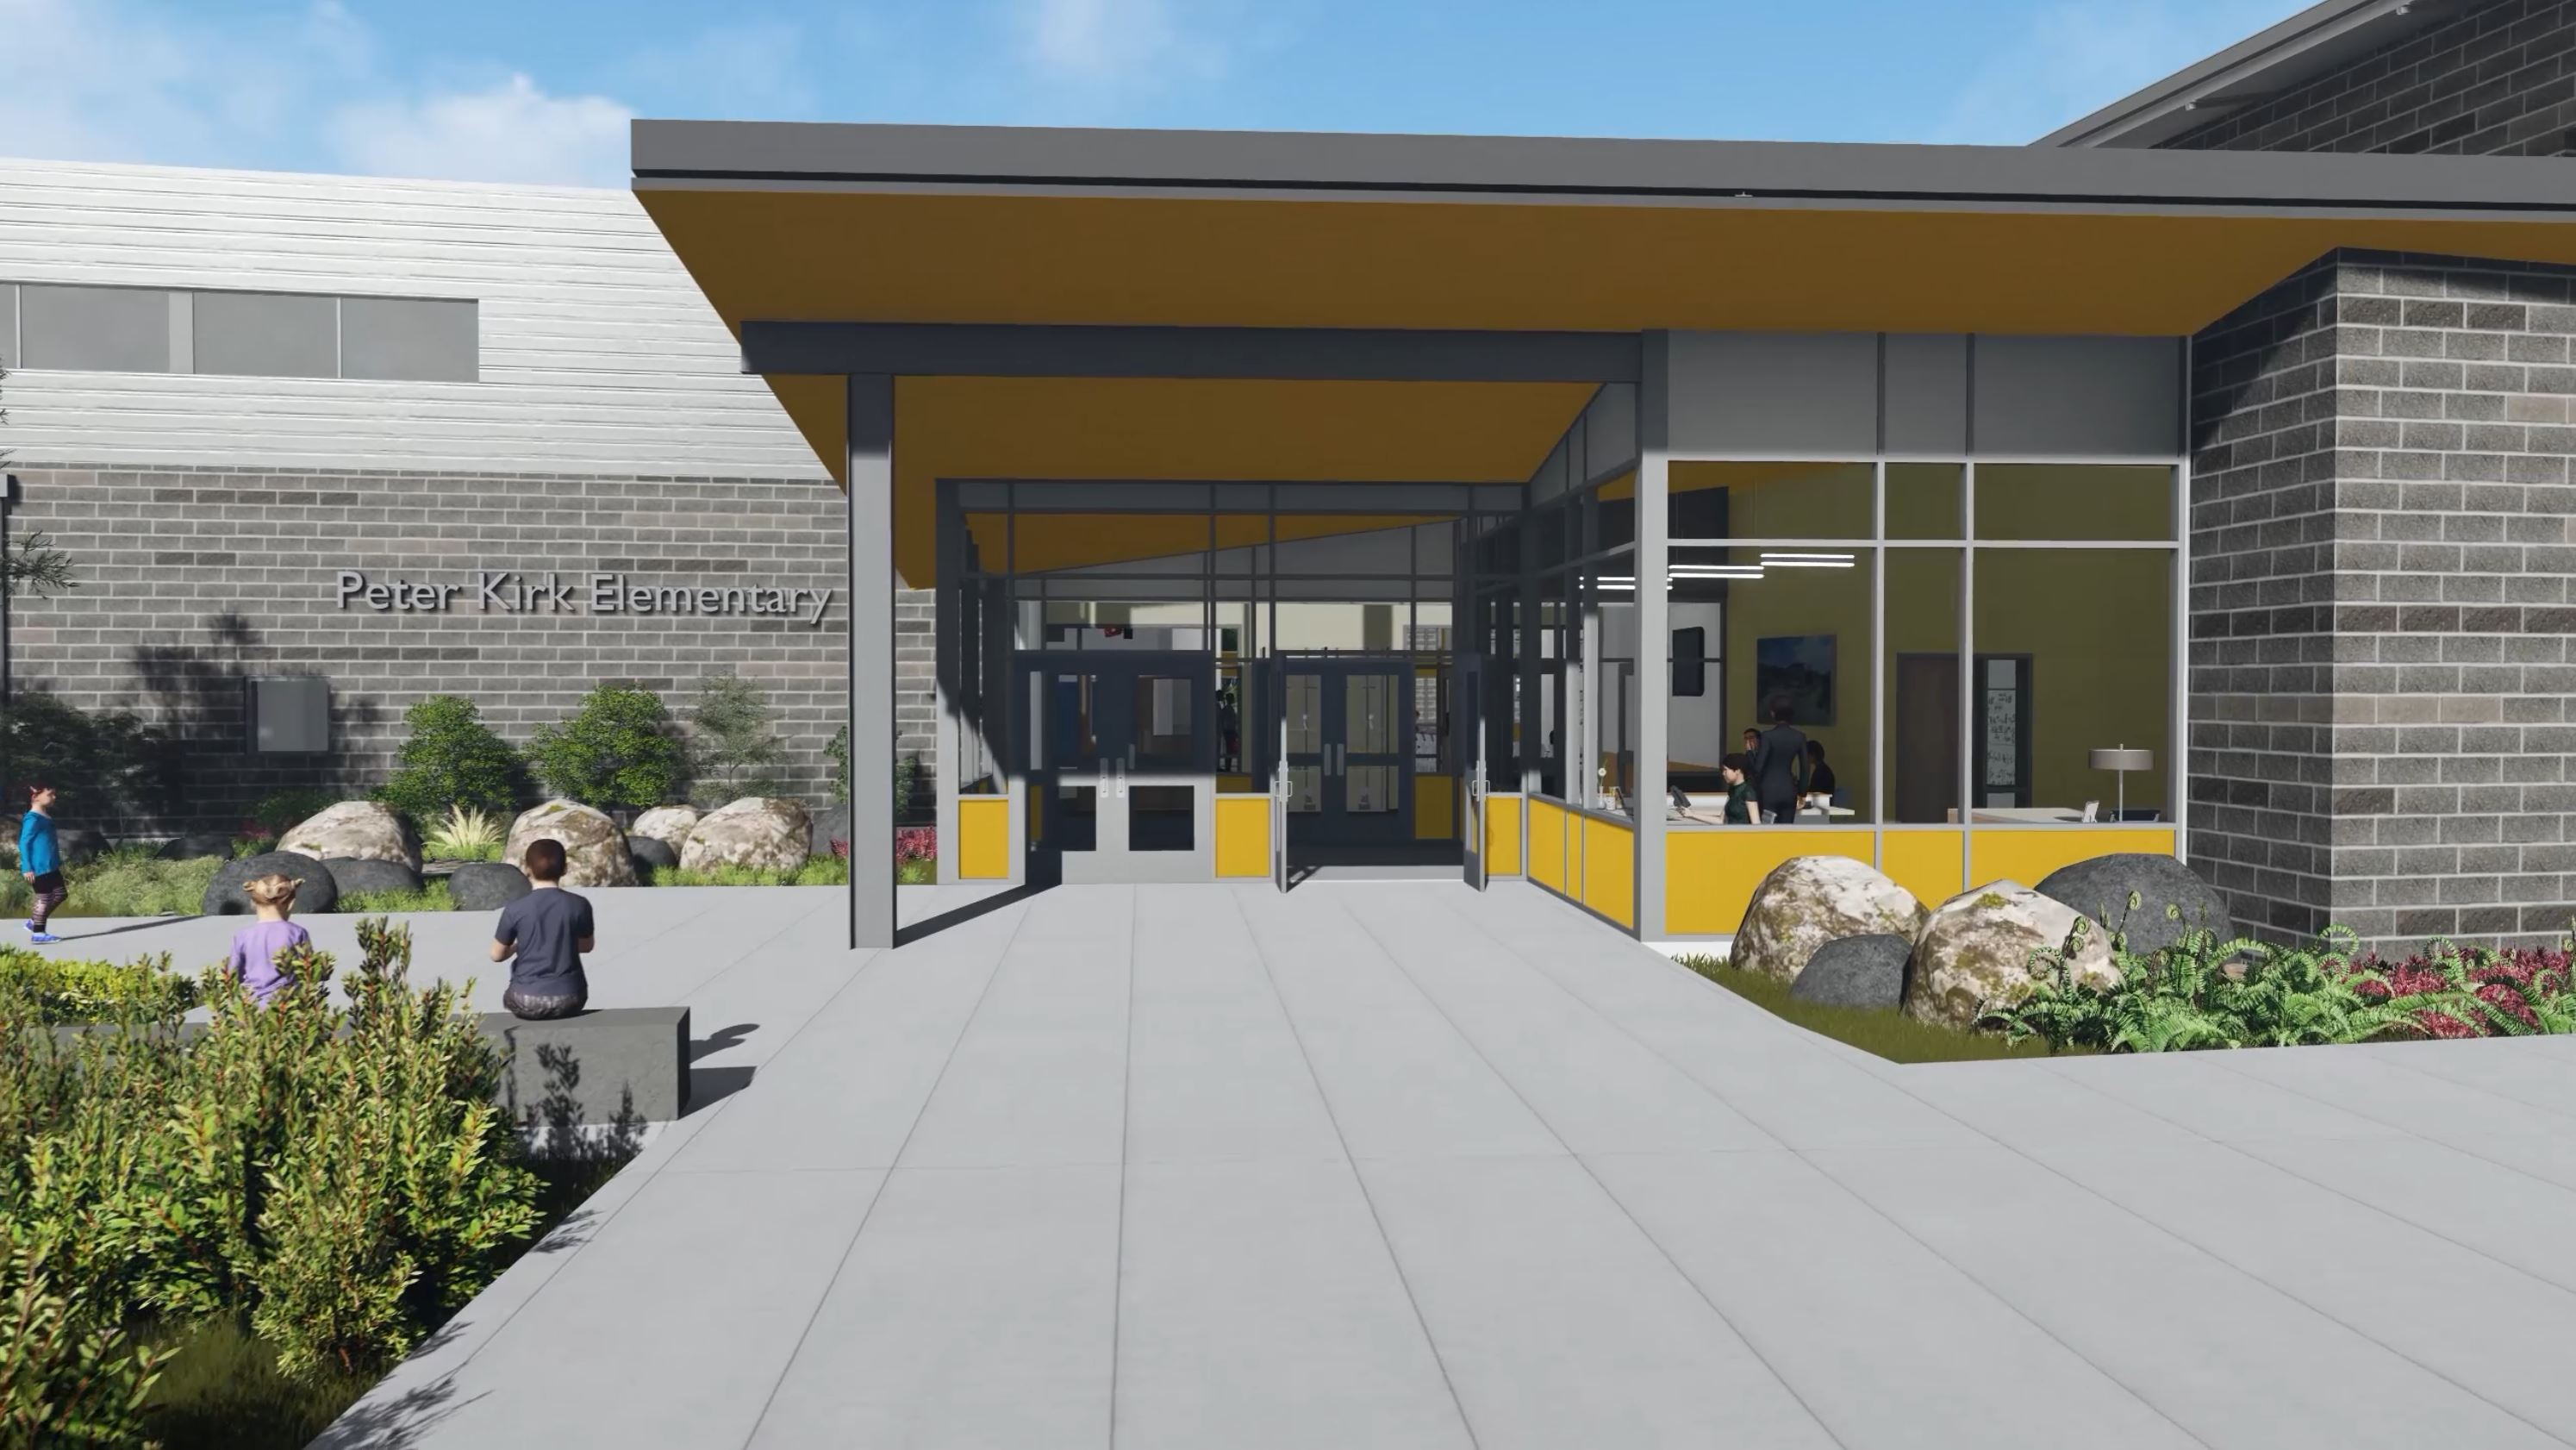 A 3D virtual tour of the new Peter Kirk Elementary